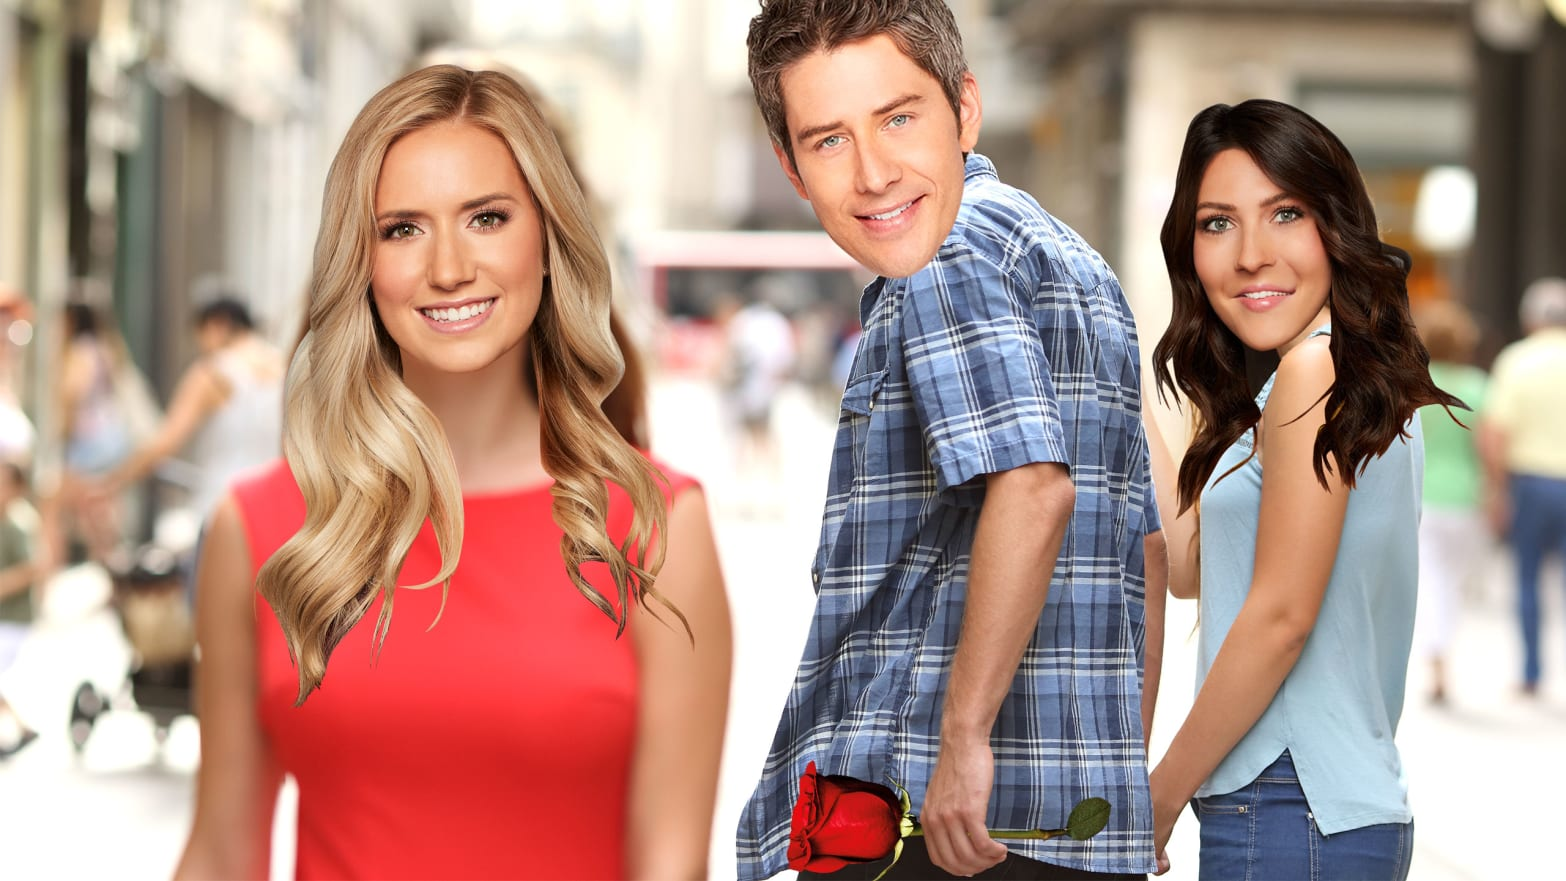 arie dating bachelorette producent